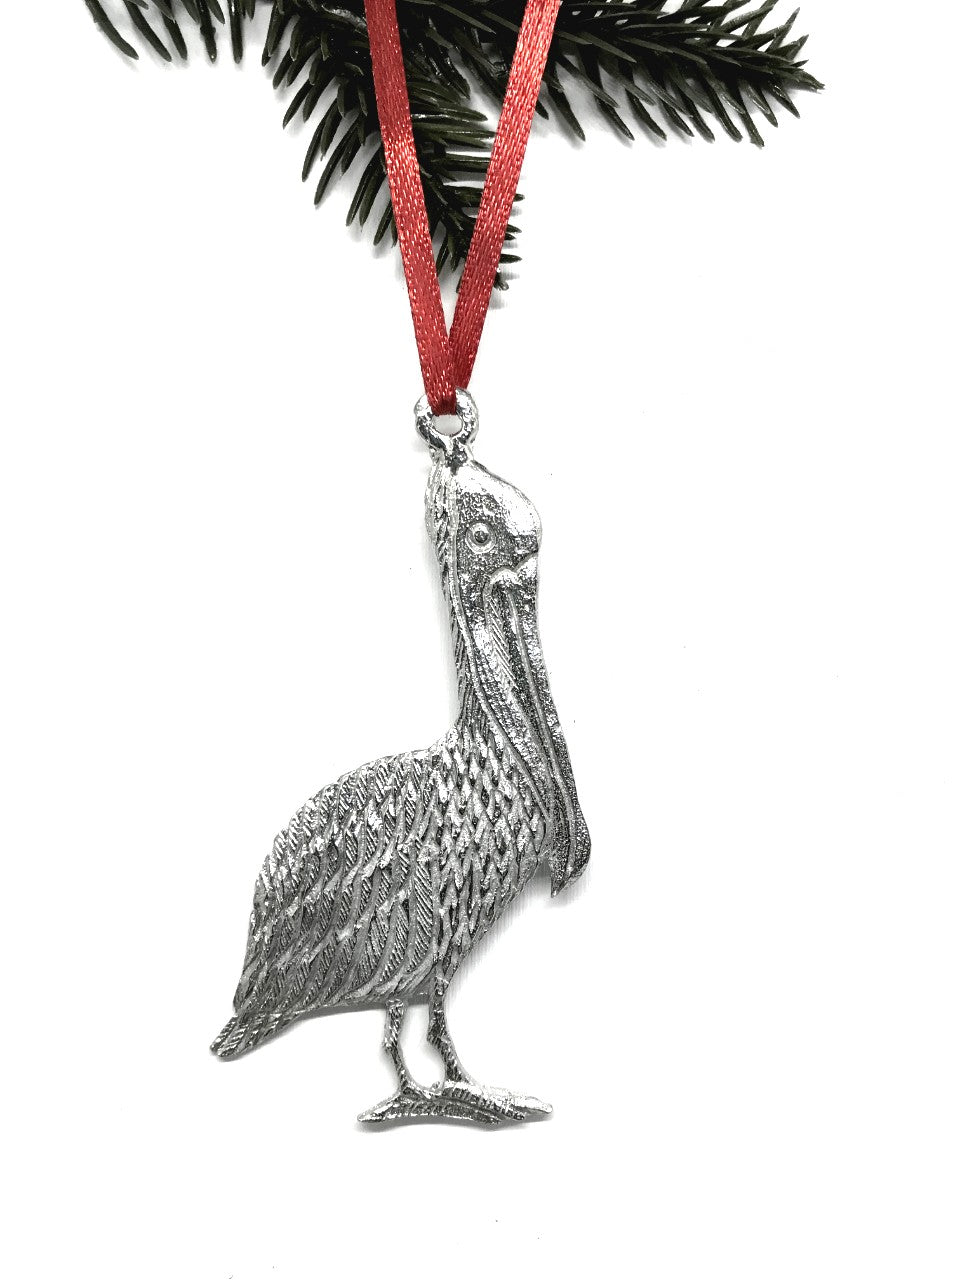 USA Handcrafted Louisiana LO Alligator Pelican Keepsake Christmas Holiday Ornament Pewter Gift Set